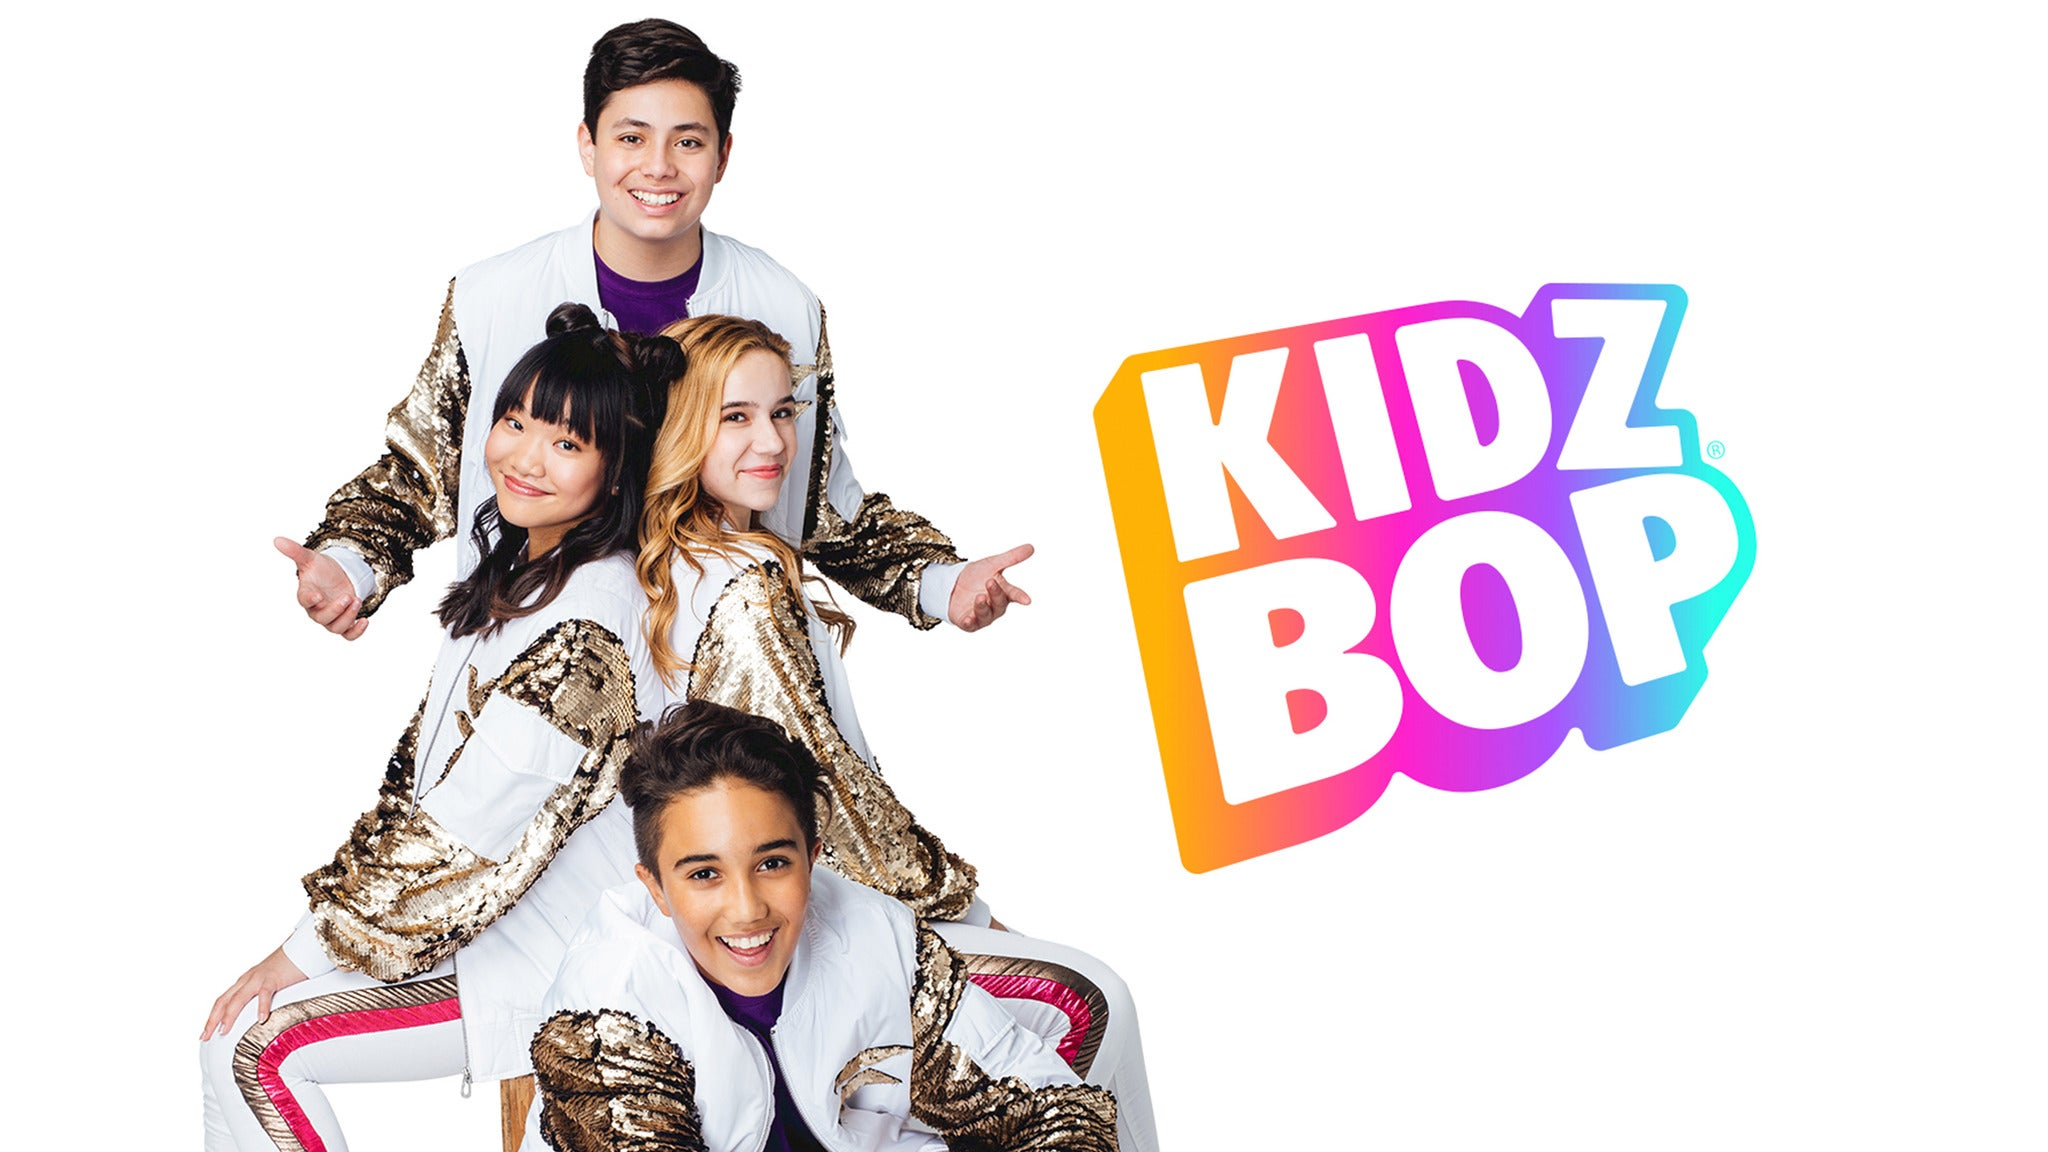 KIDZ BOP Live 2021 Tour at Red Rocks Amphitheatre - Morrison, CO 80465